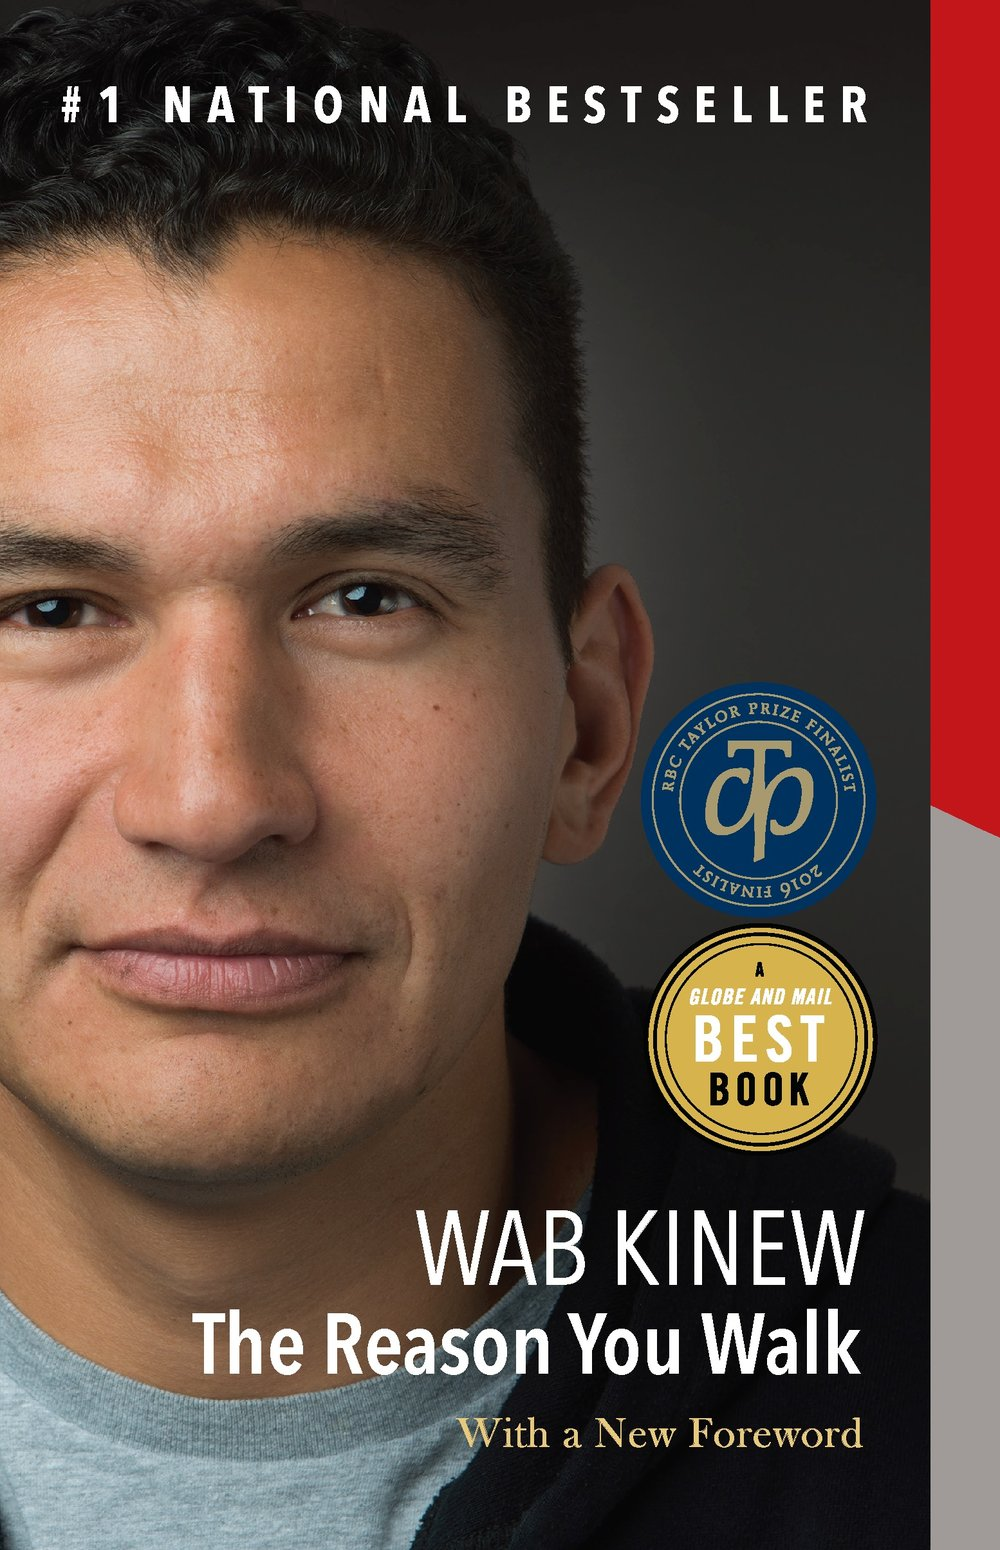 The Reason You Walk by Wab Kinew